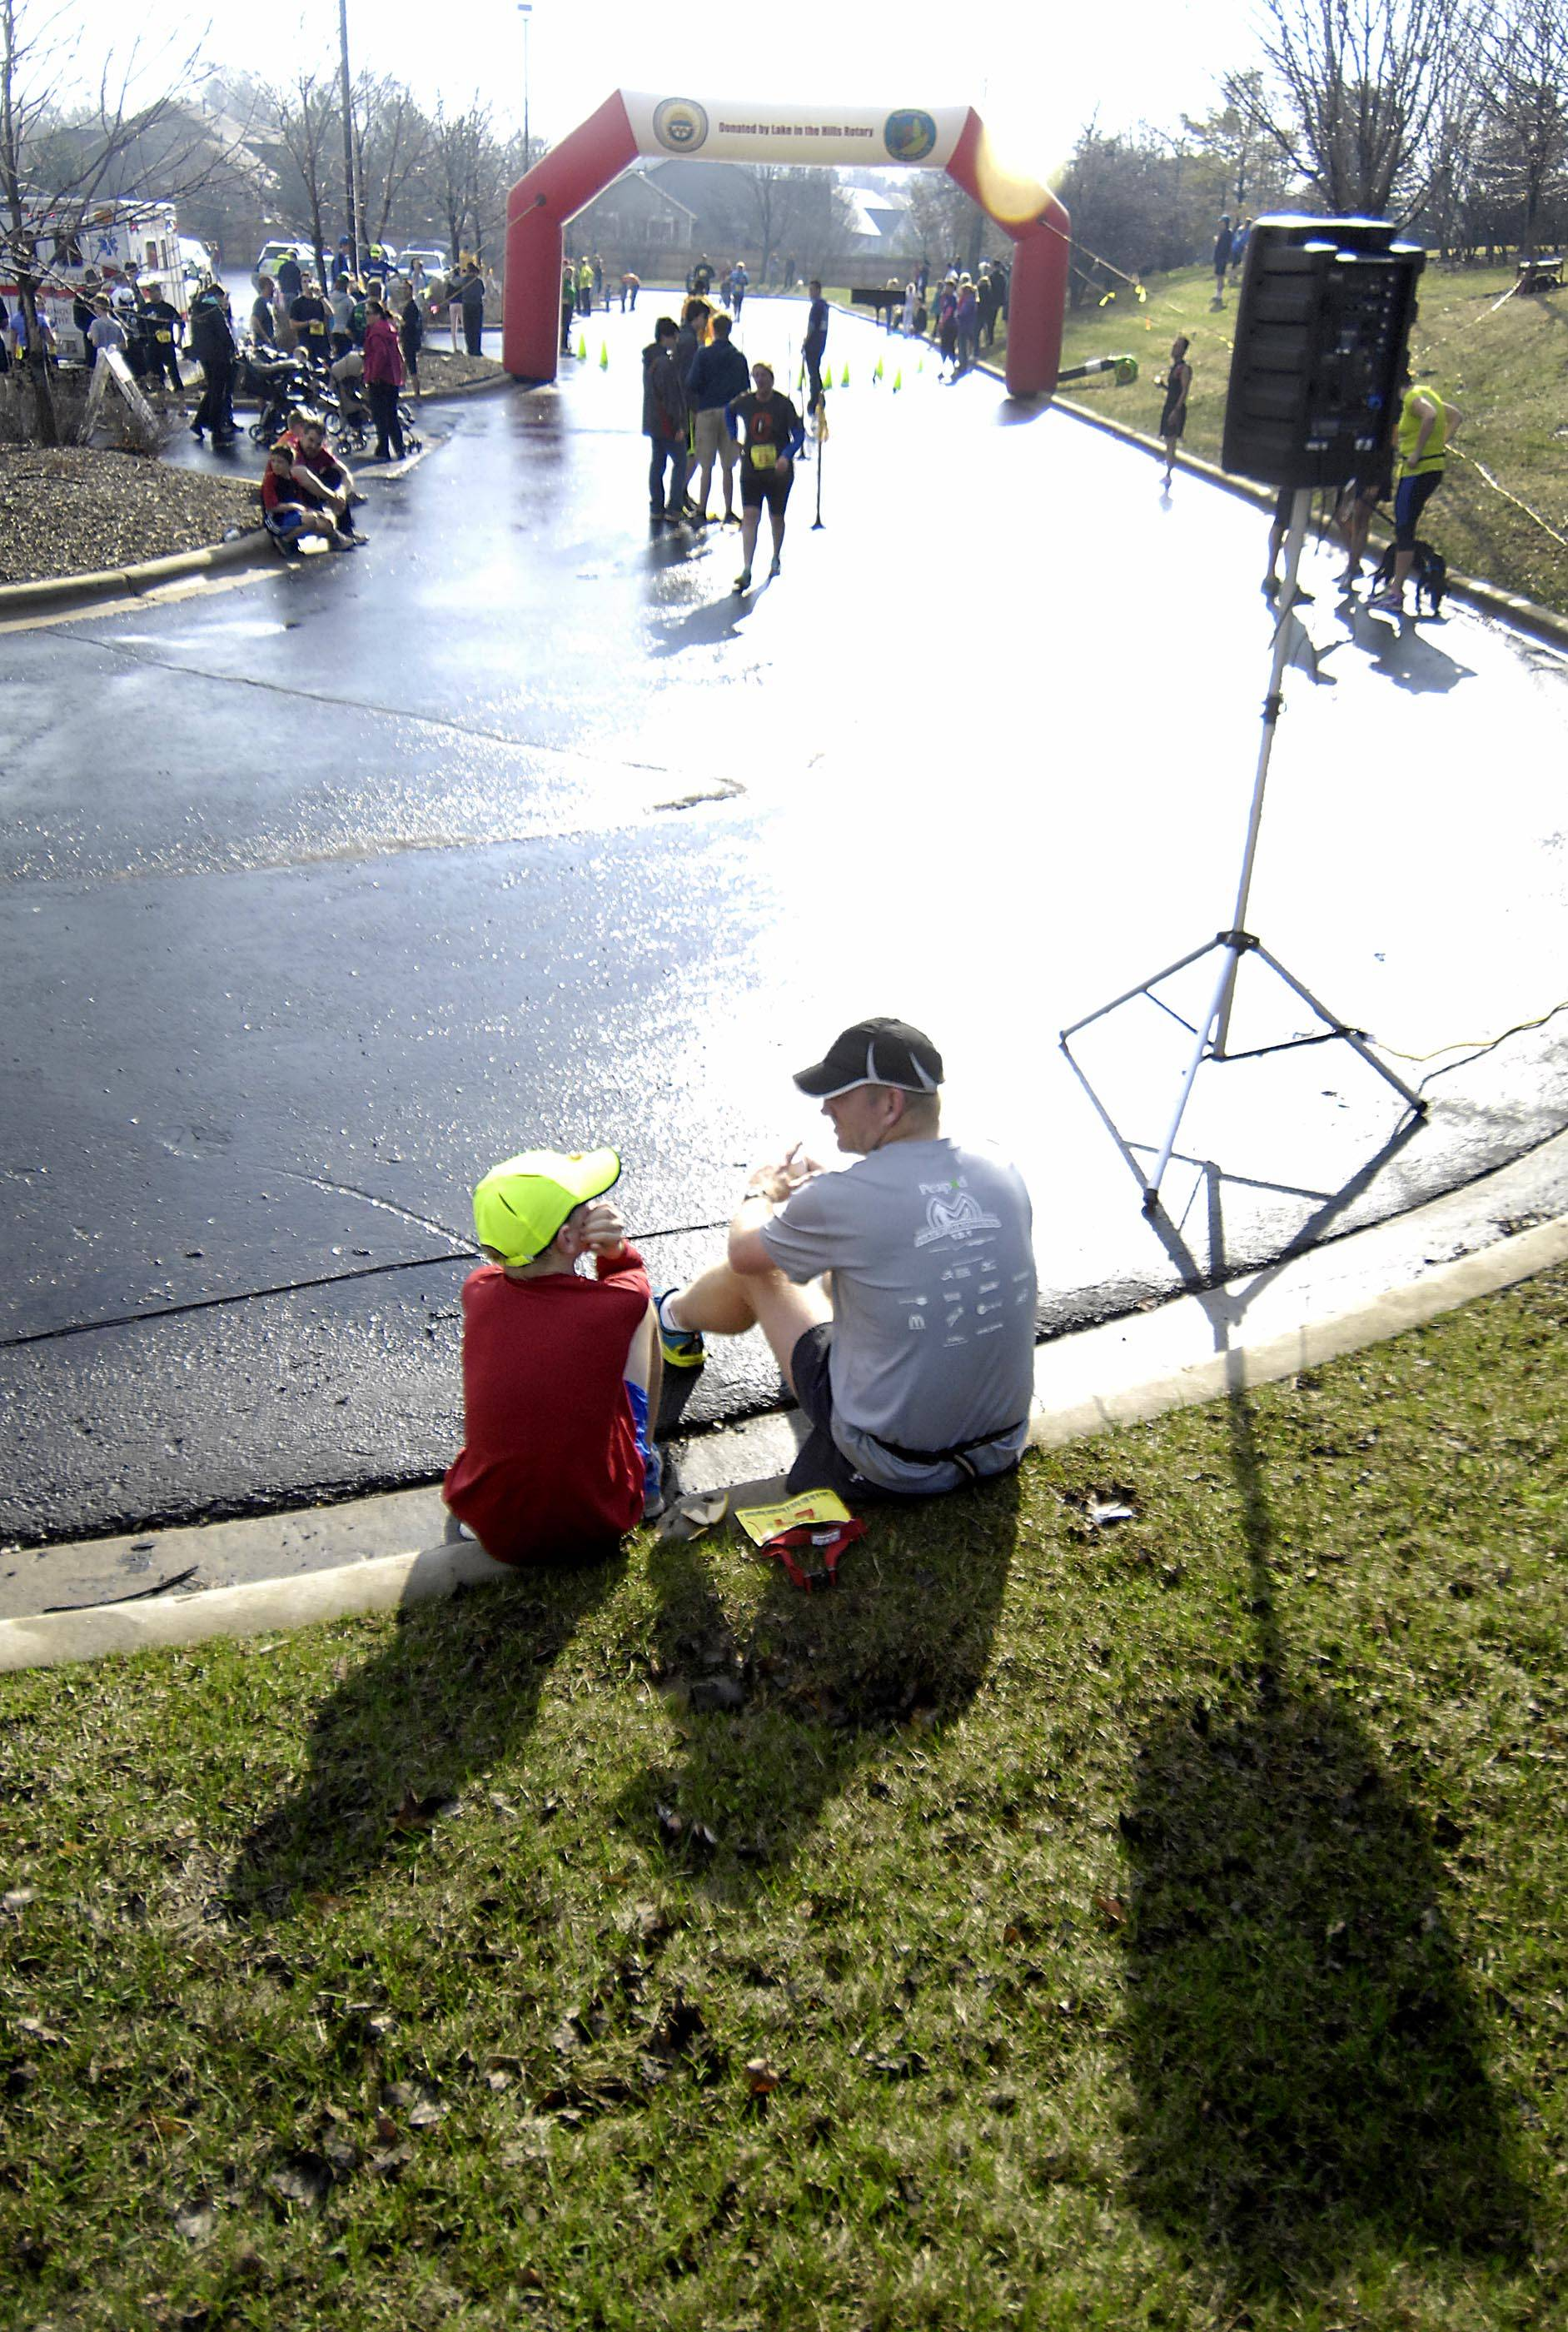 Jerry Cravens of Algonquin talks with his son Owen, 10, near the finish line Sunday morning at the 15th Run Thru The Hills 5K and 10K road races in Lake in the Hills. They both ran the 5K, with Owen finishing a minute faster than his dad.